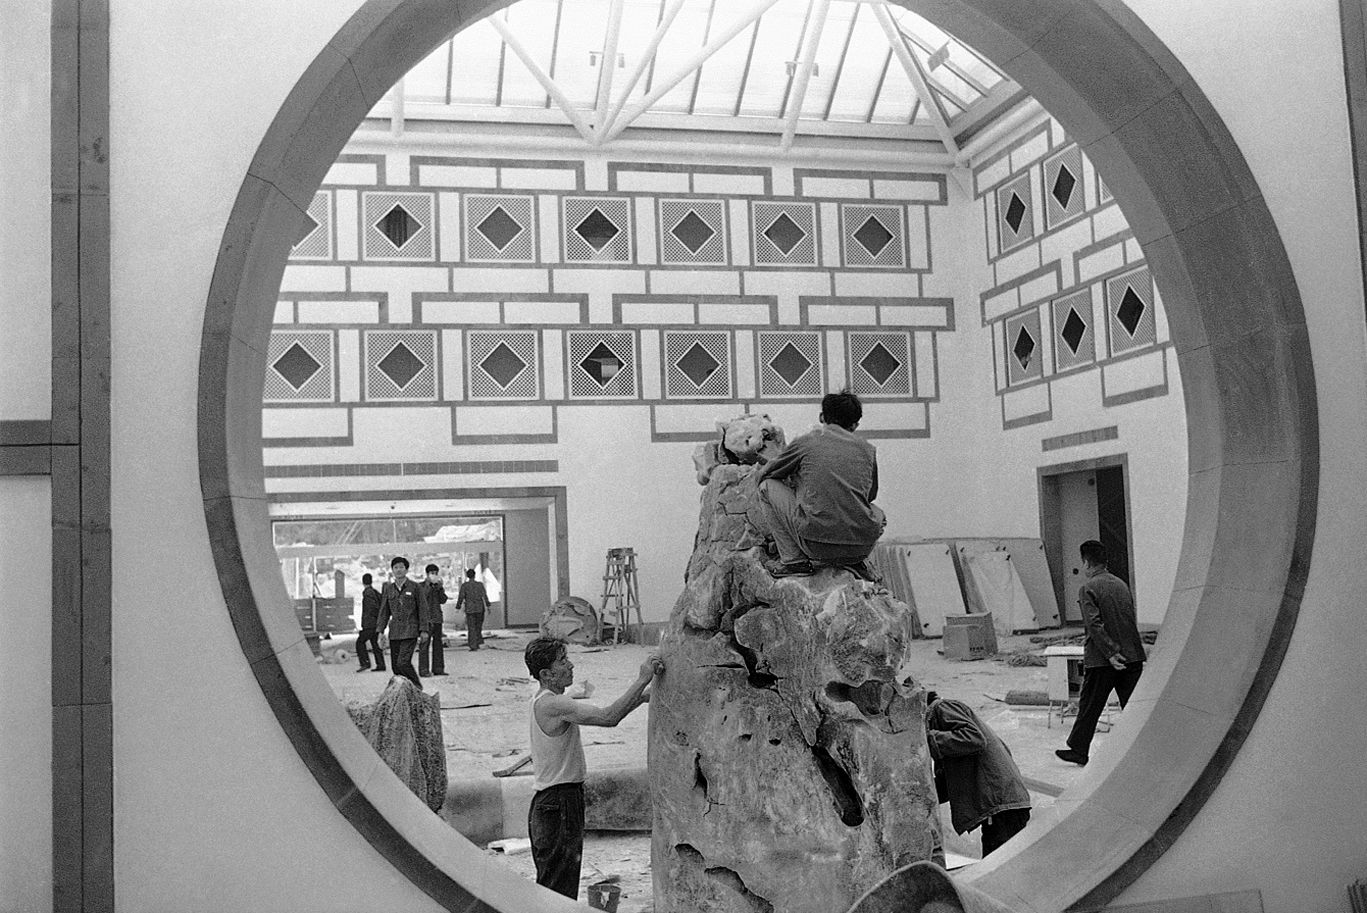 Chinese workers put on the finishing touch on a rockery inside the lobby of Fragrant Hill Hotel in Beijing, China on October 9, 1982, designed by the noted American architect, I.M. Pei, who will preview the hotel next week with visitor Jacqueline Onassis.  (AP Photo/Heung Shing Liu)